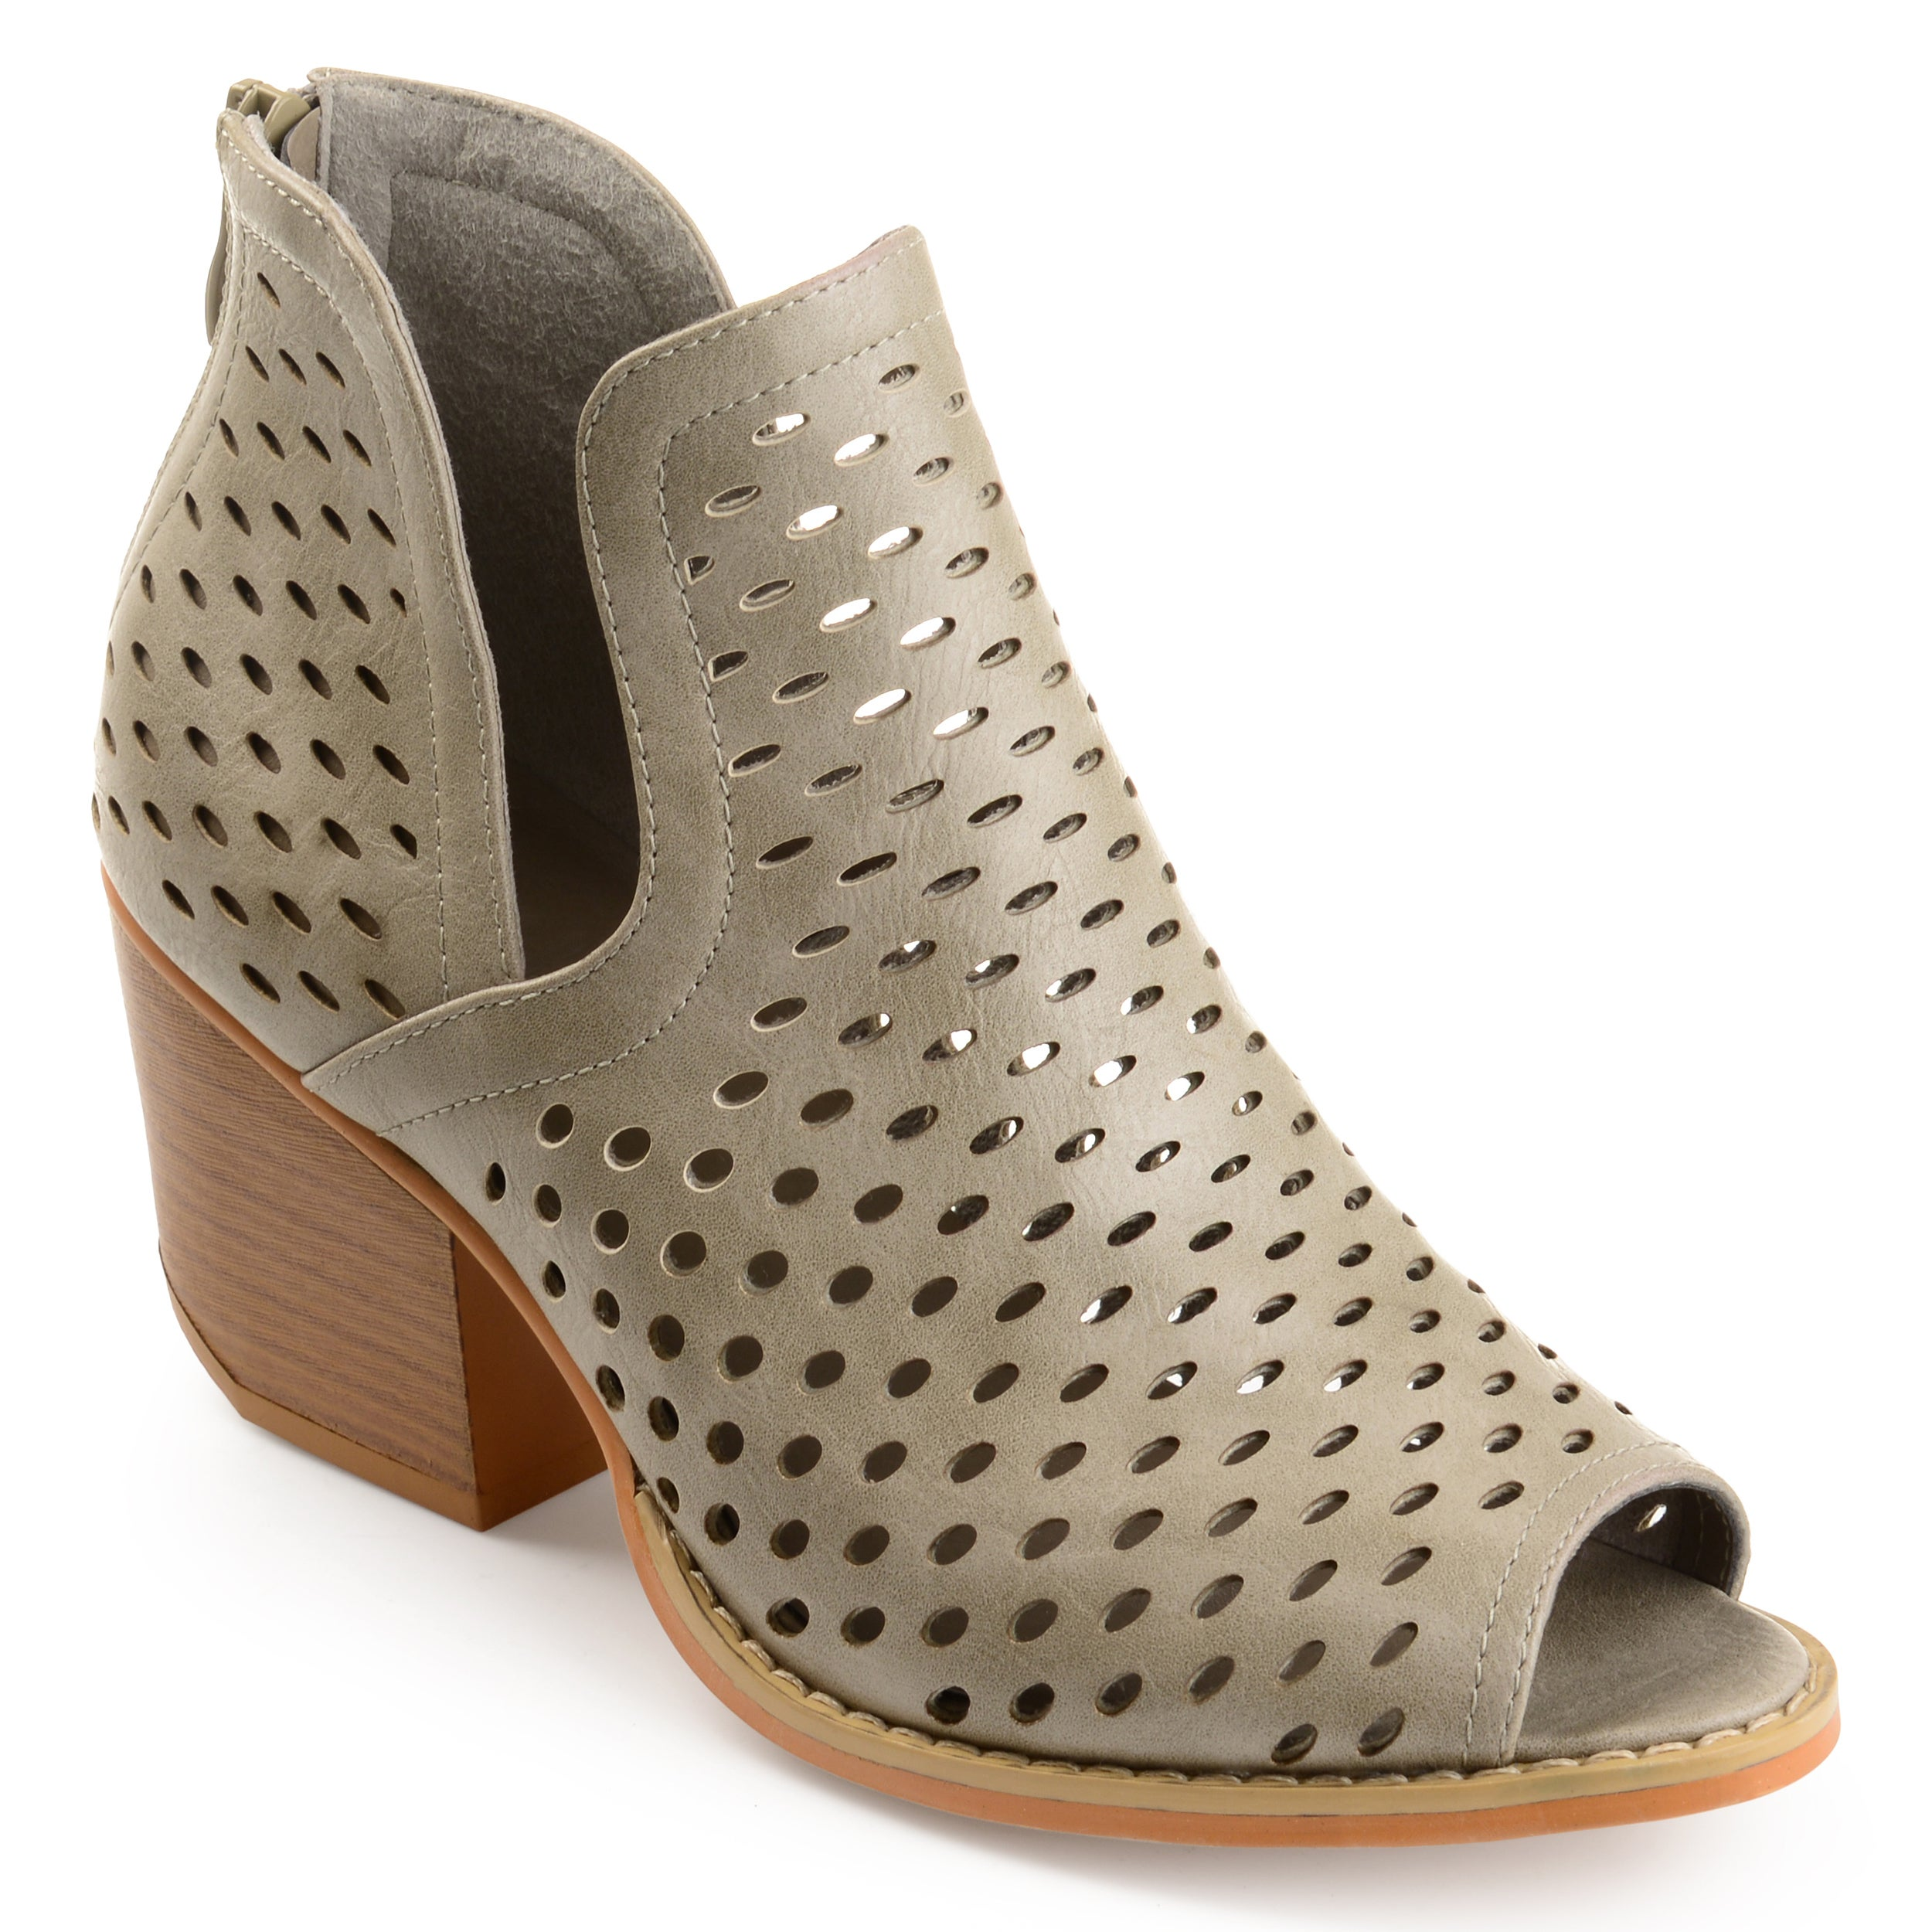 Journee Collection Women's 'Alaric' Perforated Side-slit Open-toe Booties  (More